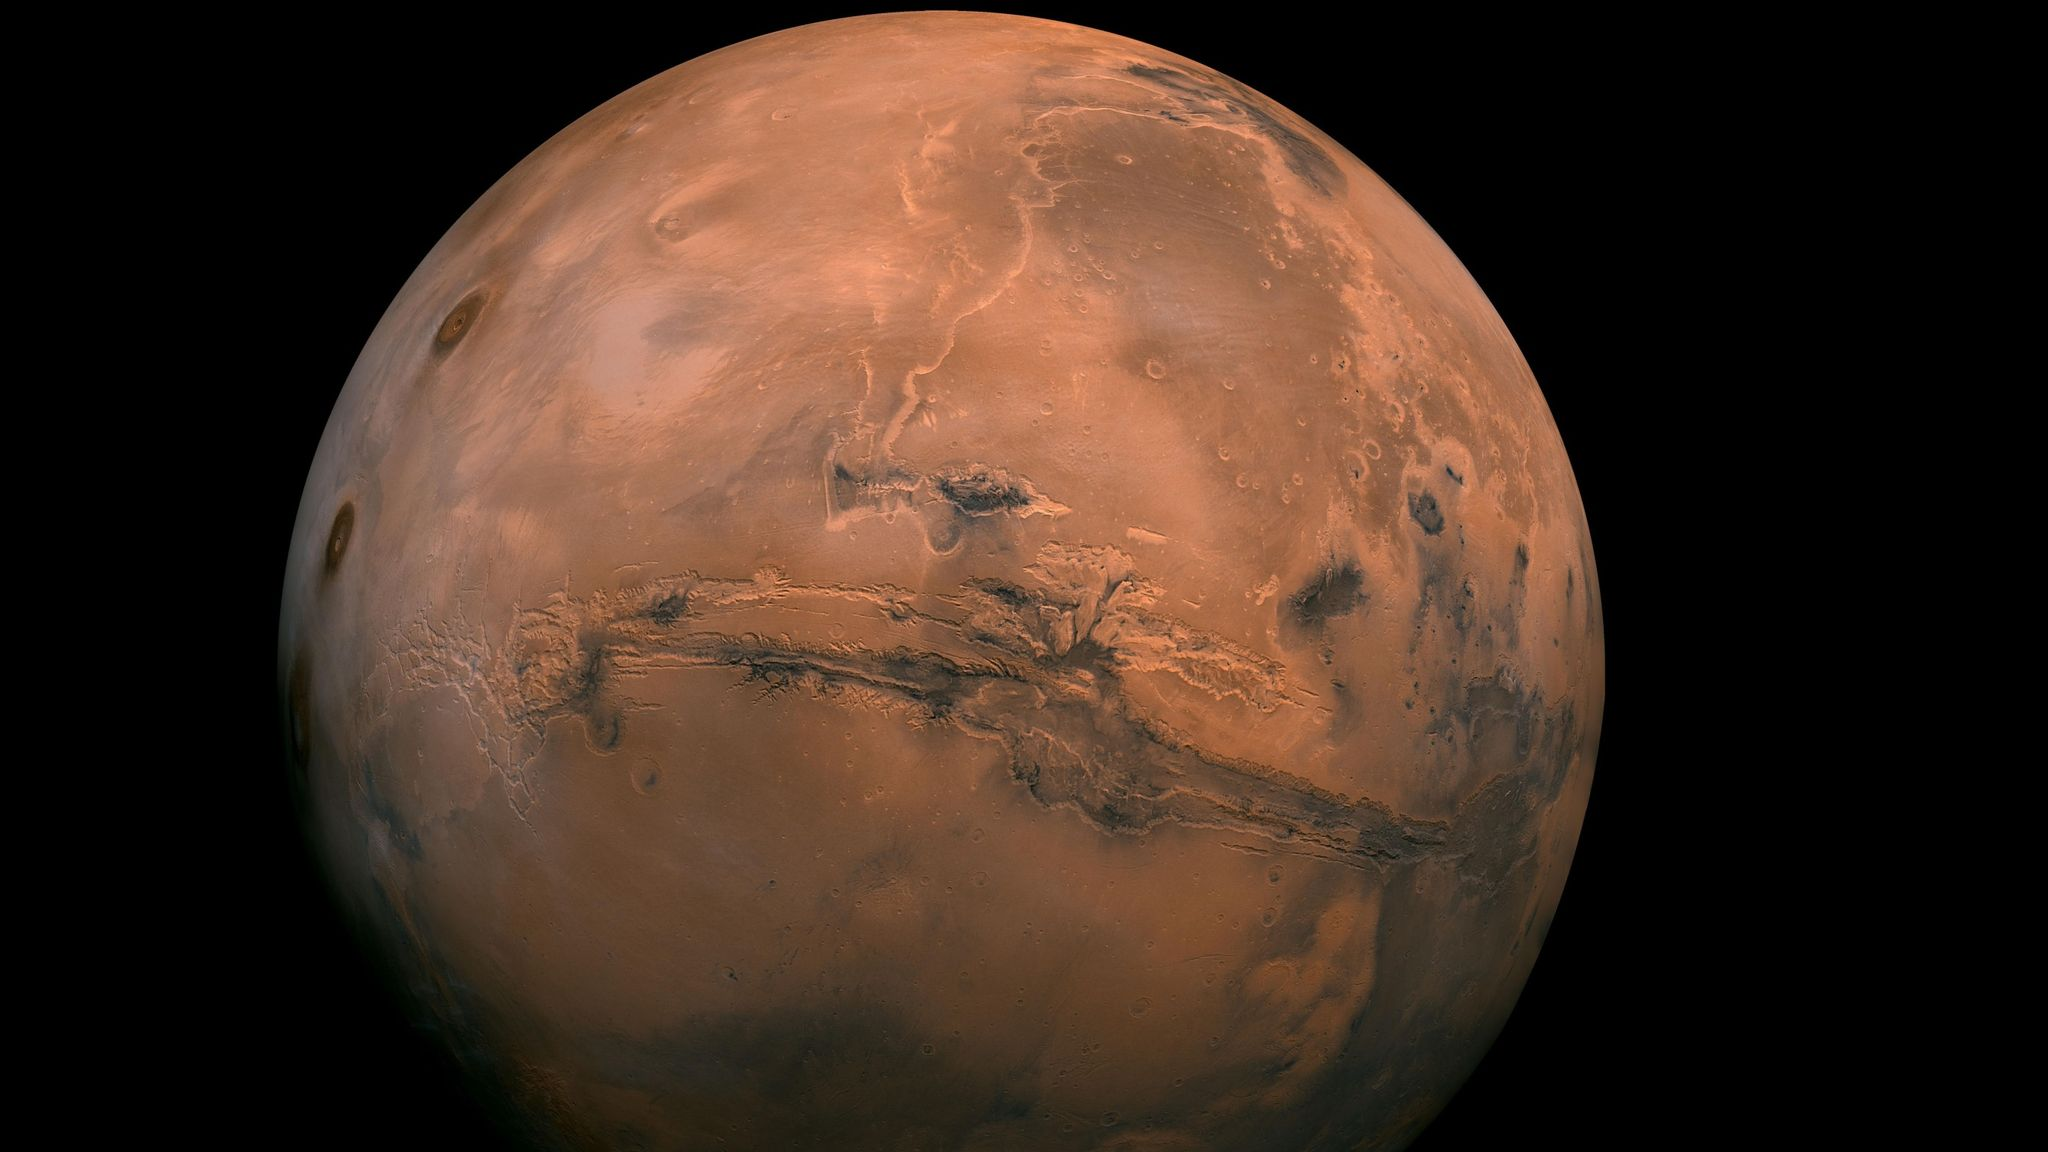 UAE's Hope probe sends back its first image of Mars